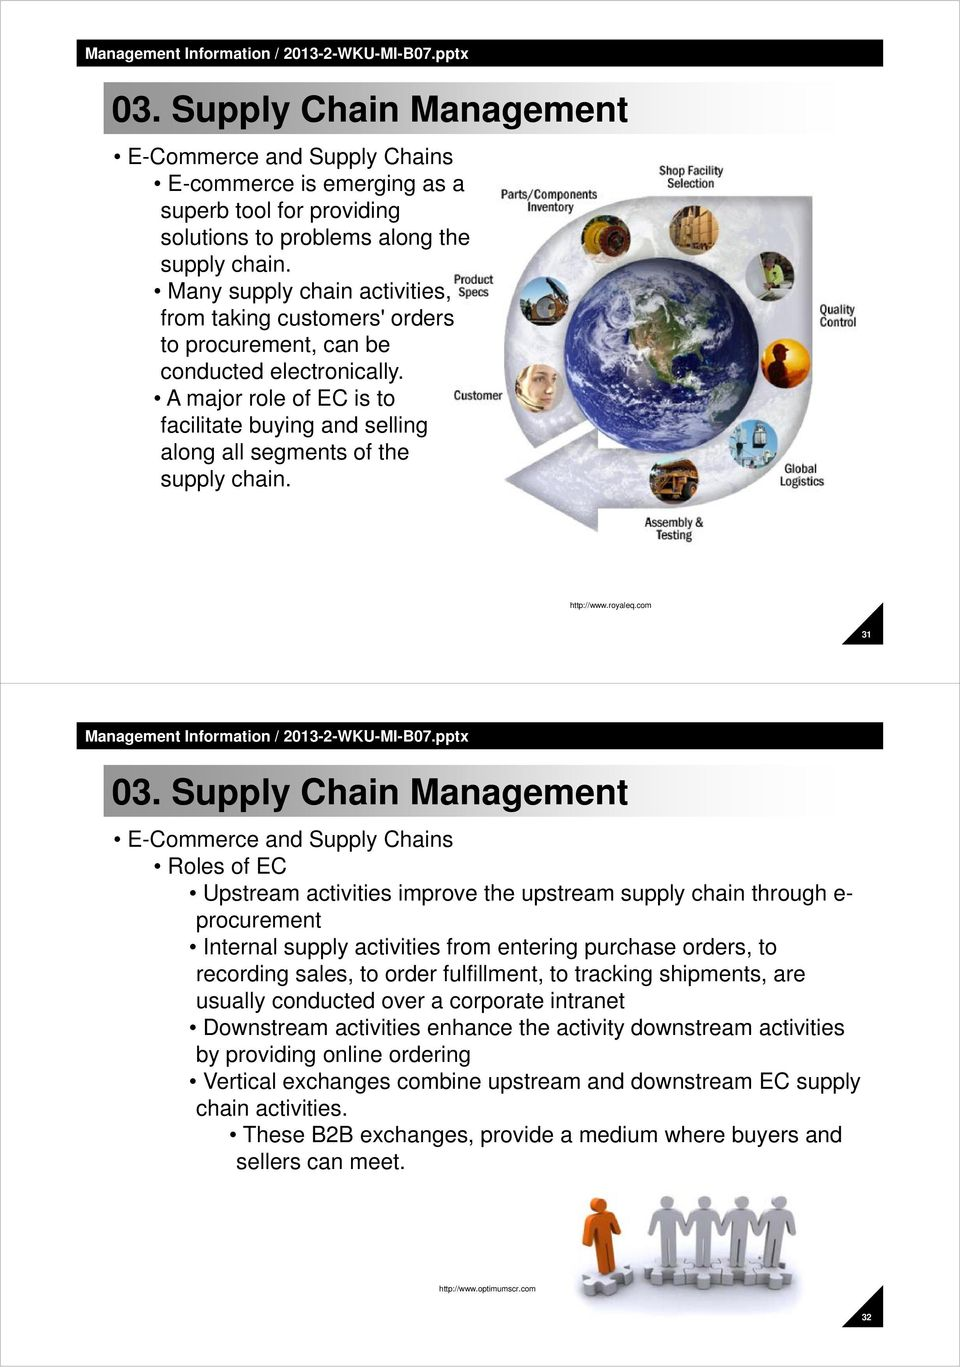 A major role of EC is to facilitate buying and selling along all segments of the supply chain. http://www.royaleq.